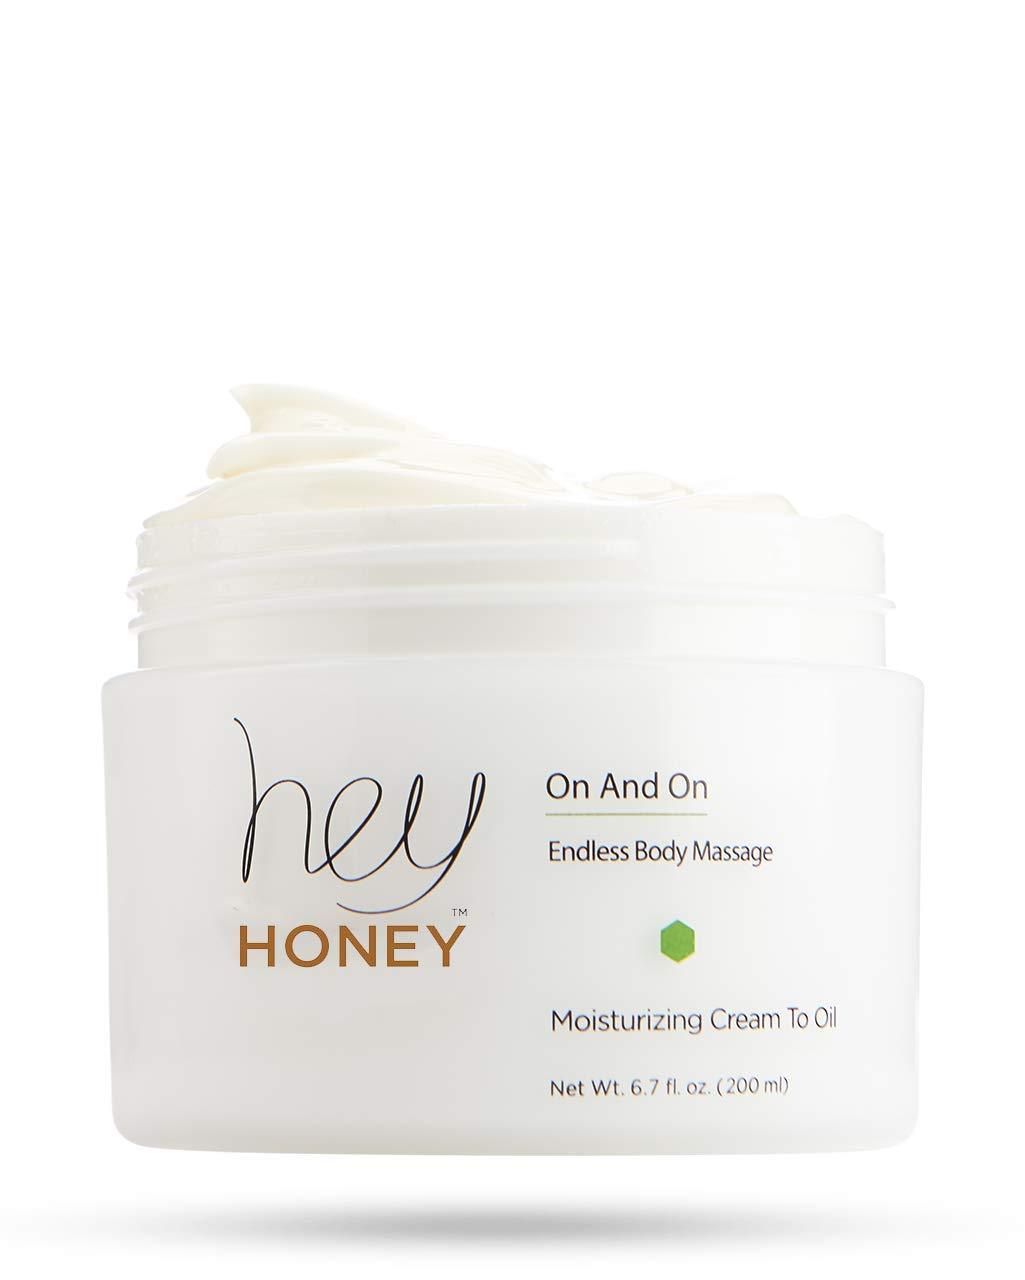 Hey Honey On And On Moisturizing Cream To Oil Body Massage, 6.7 Fl Oz